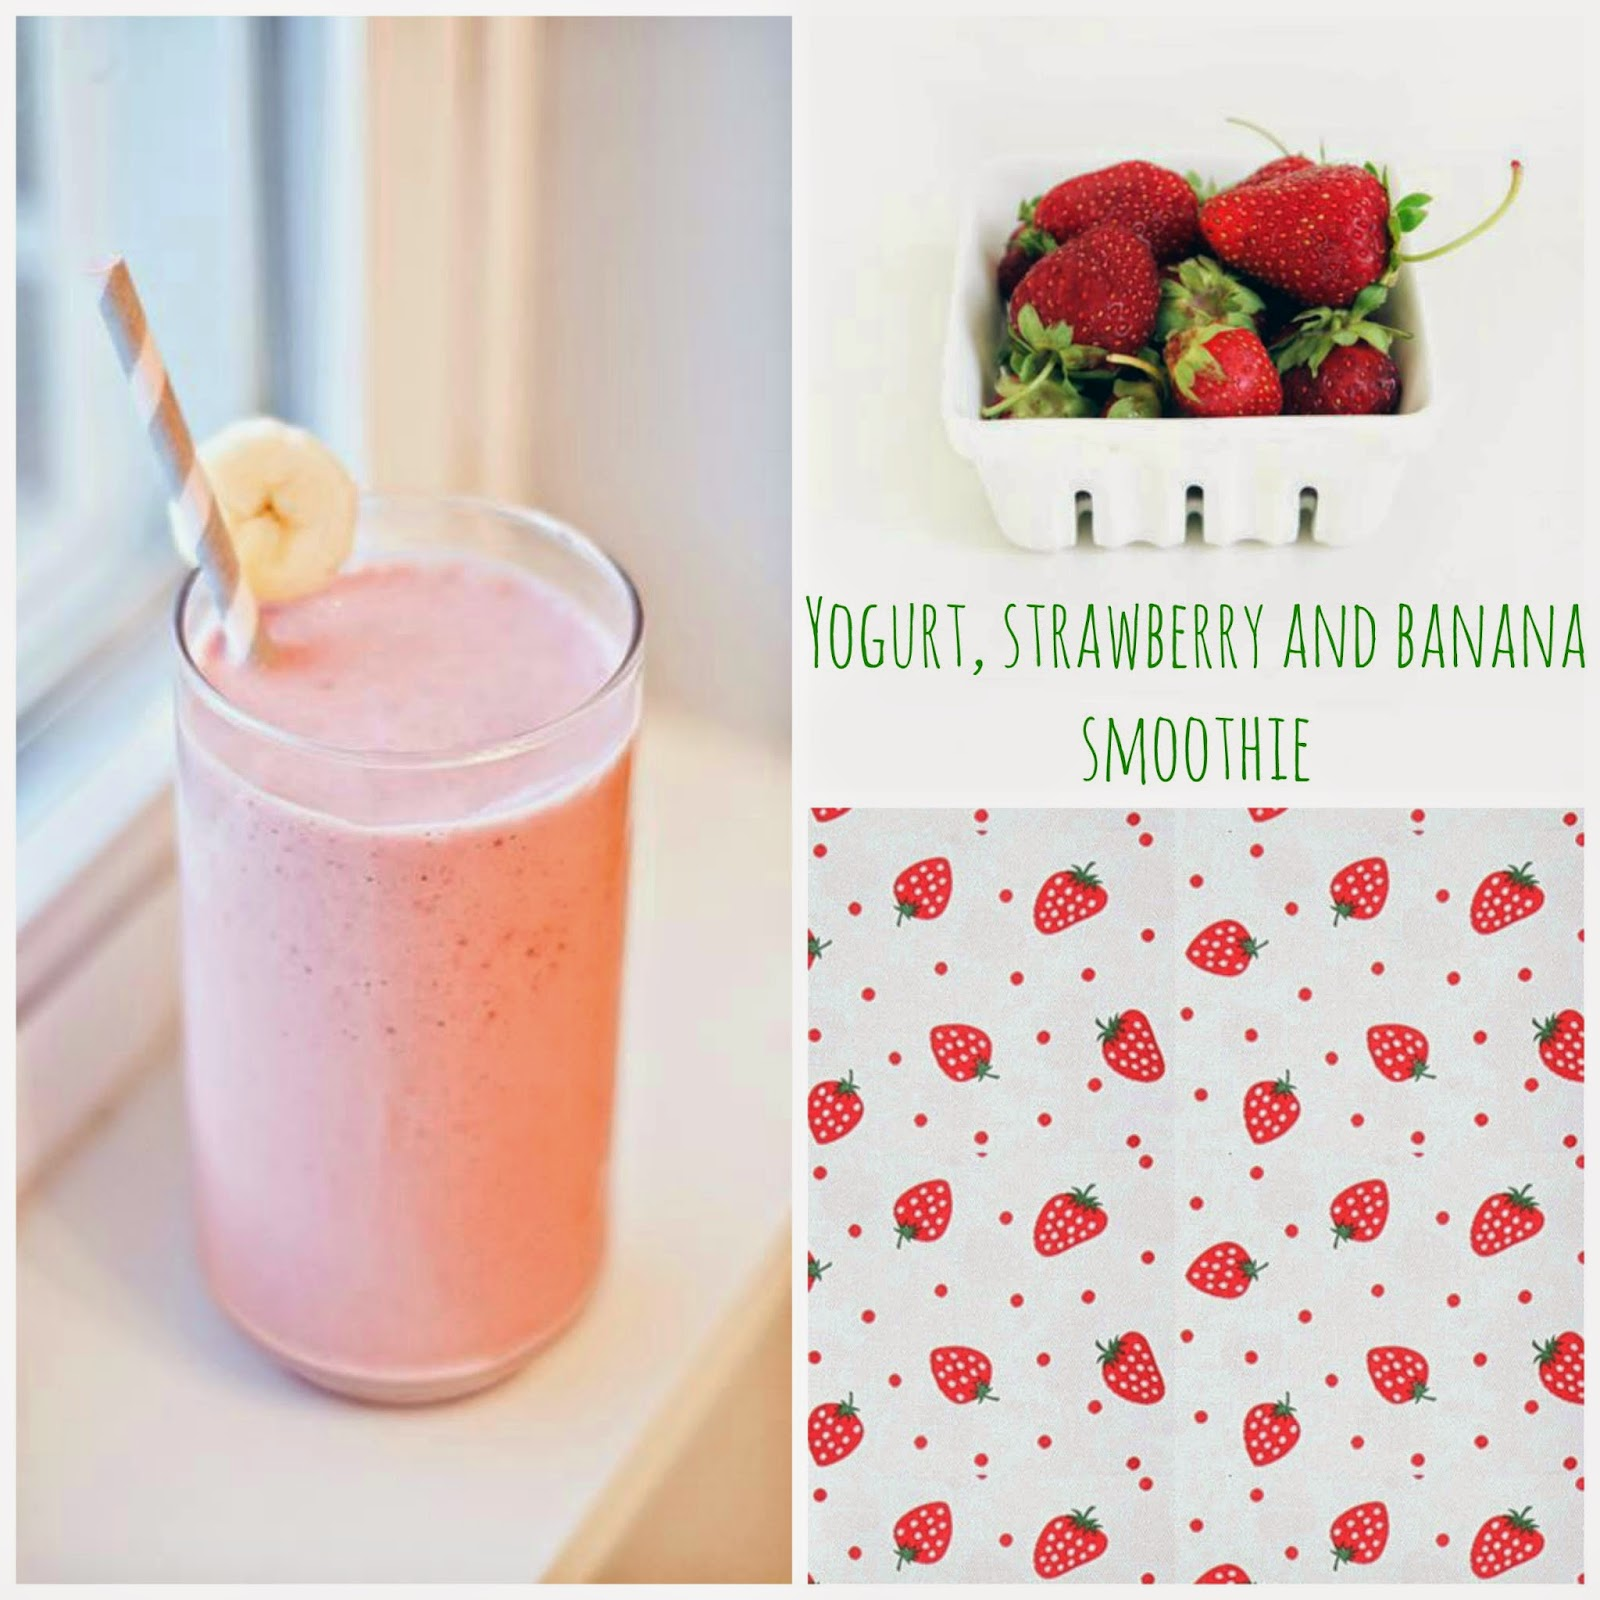 frullato con fragole, banana e yogurt / yogurt, strawberry and banana smoothie